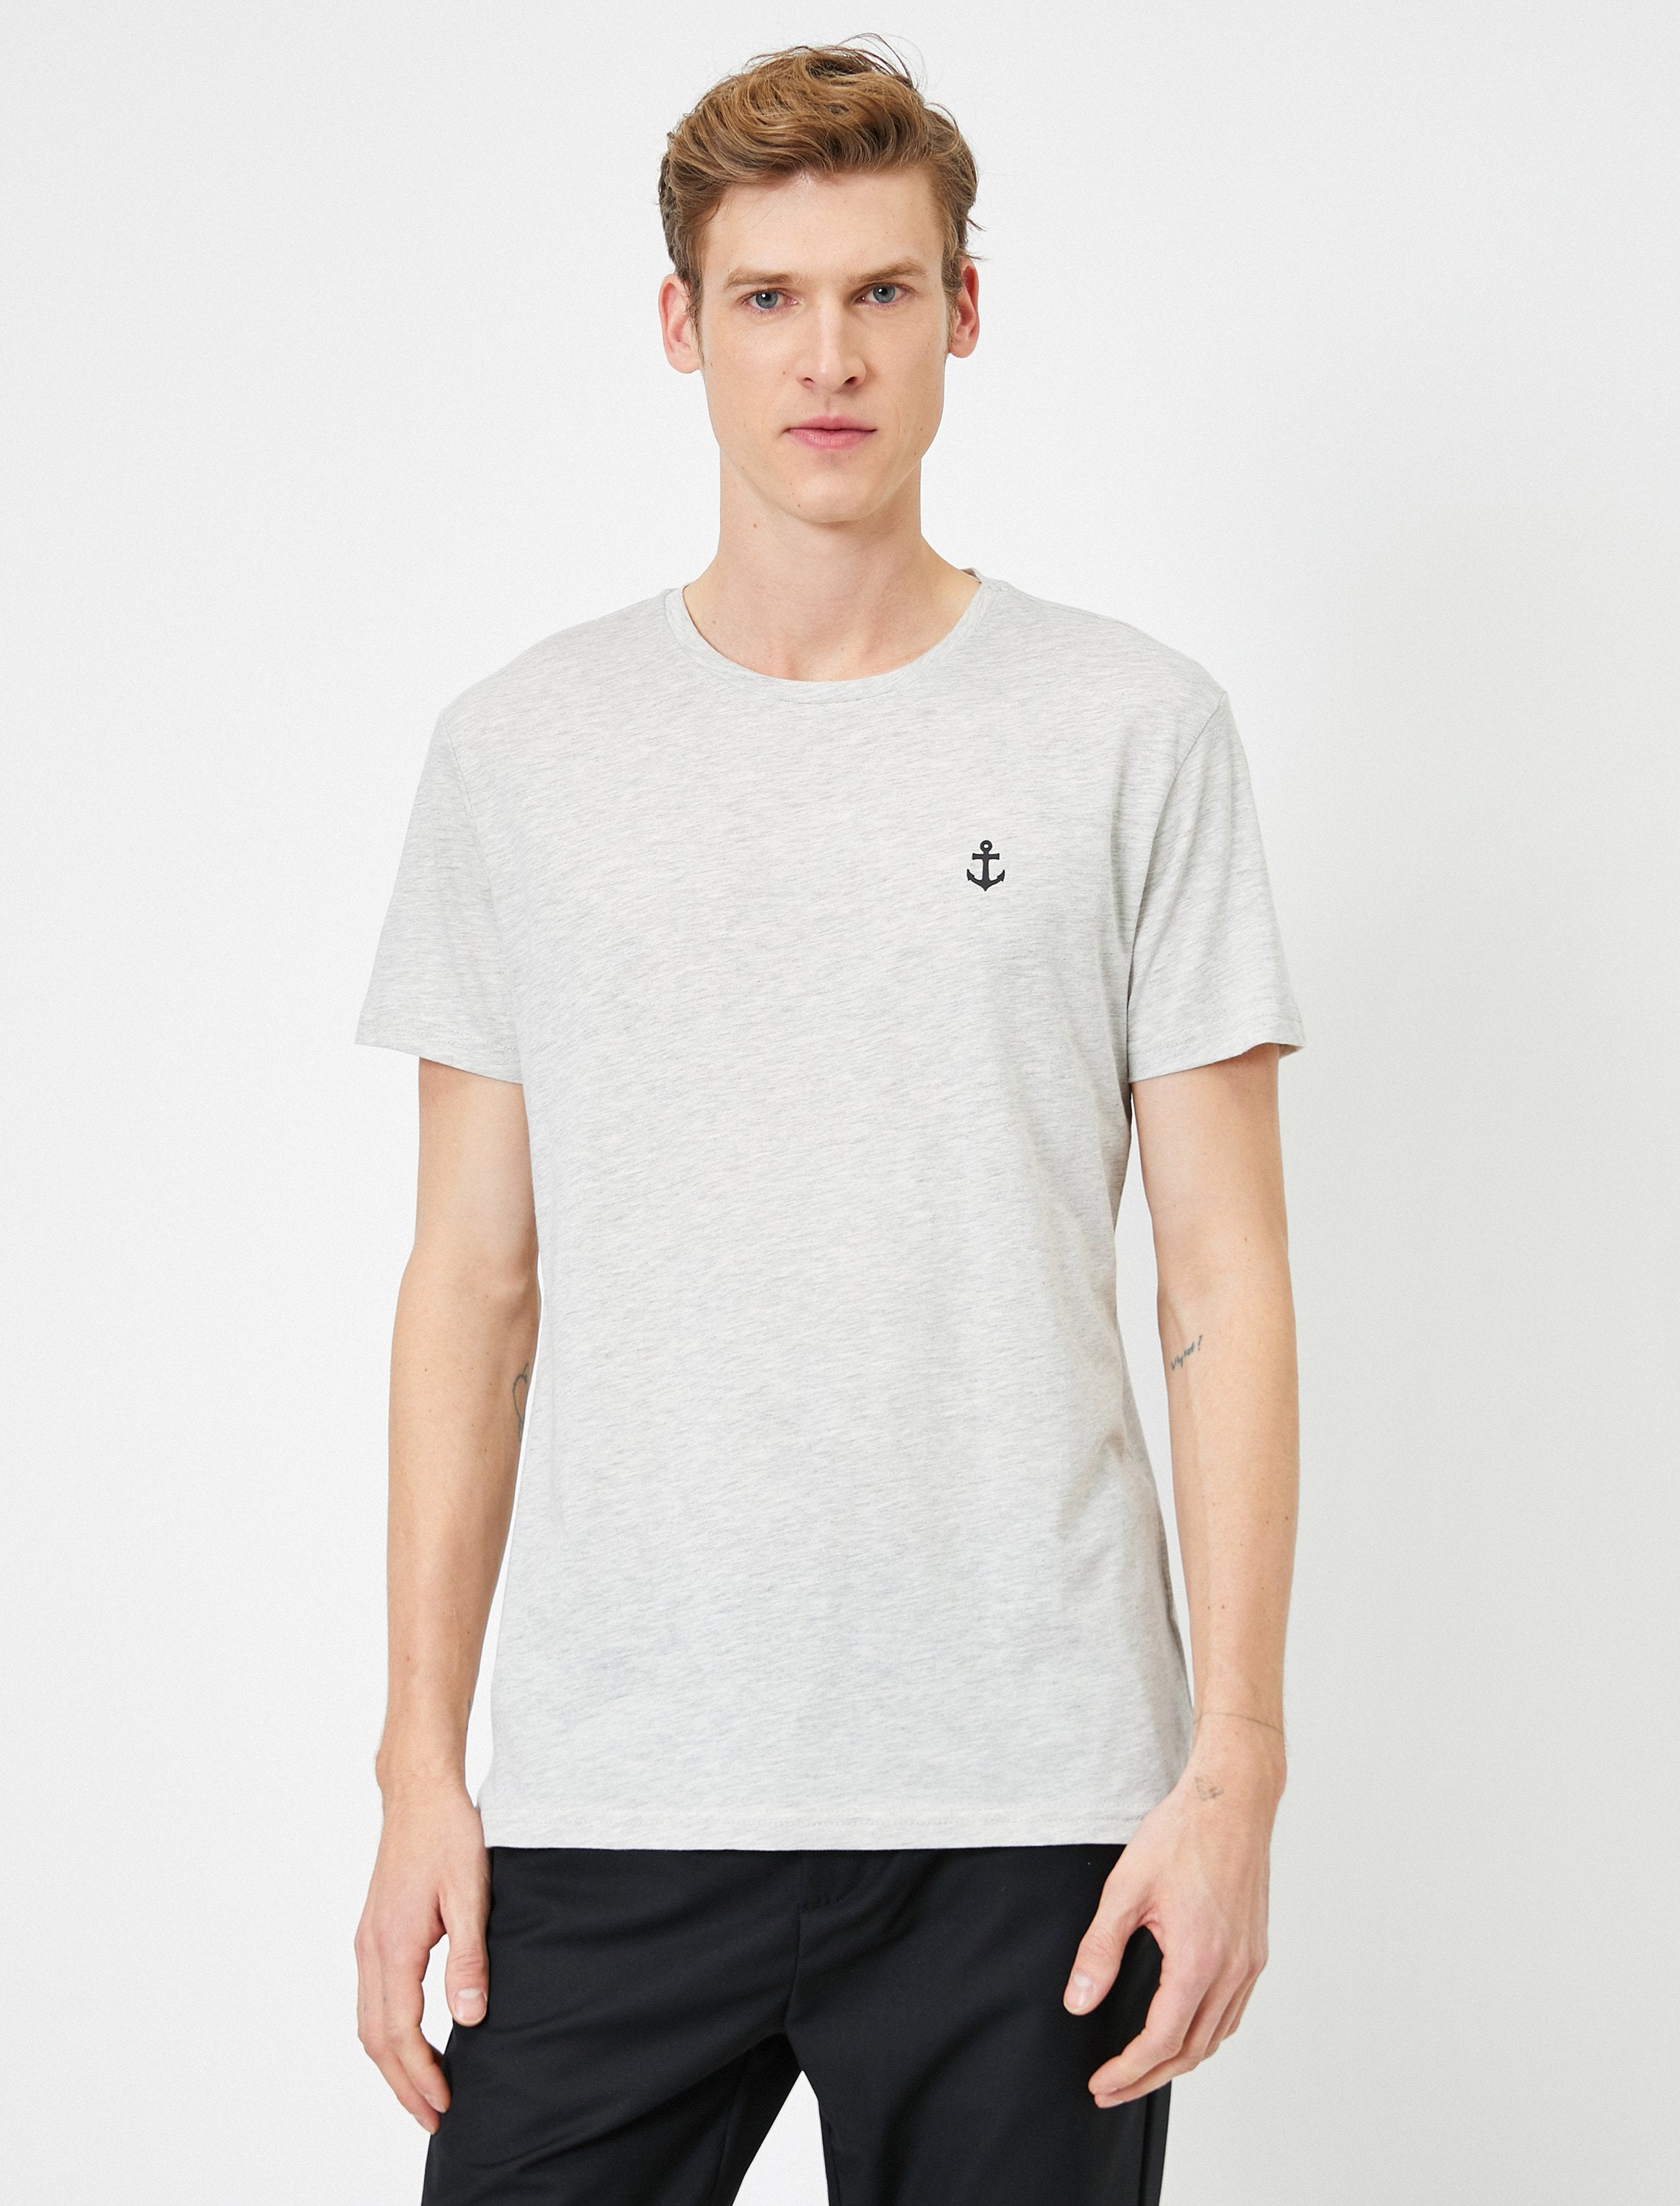 Slubbed Basic Tshirt in Light Gray